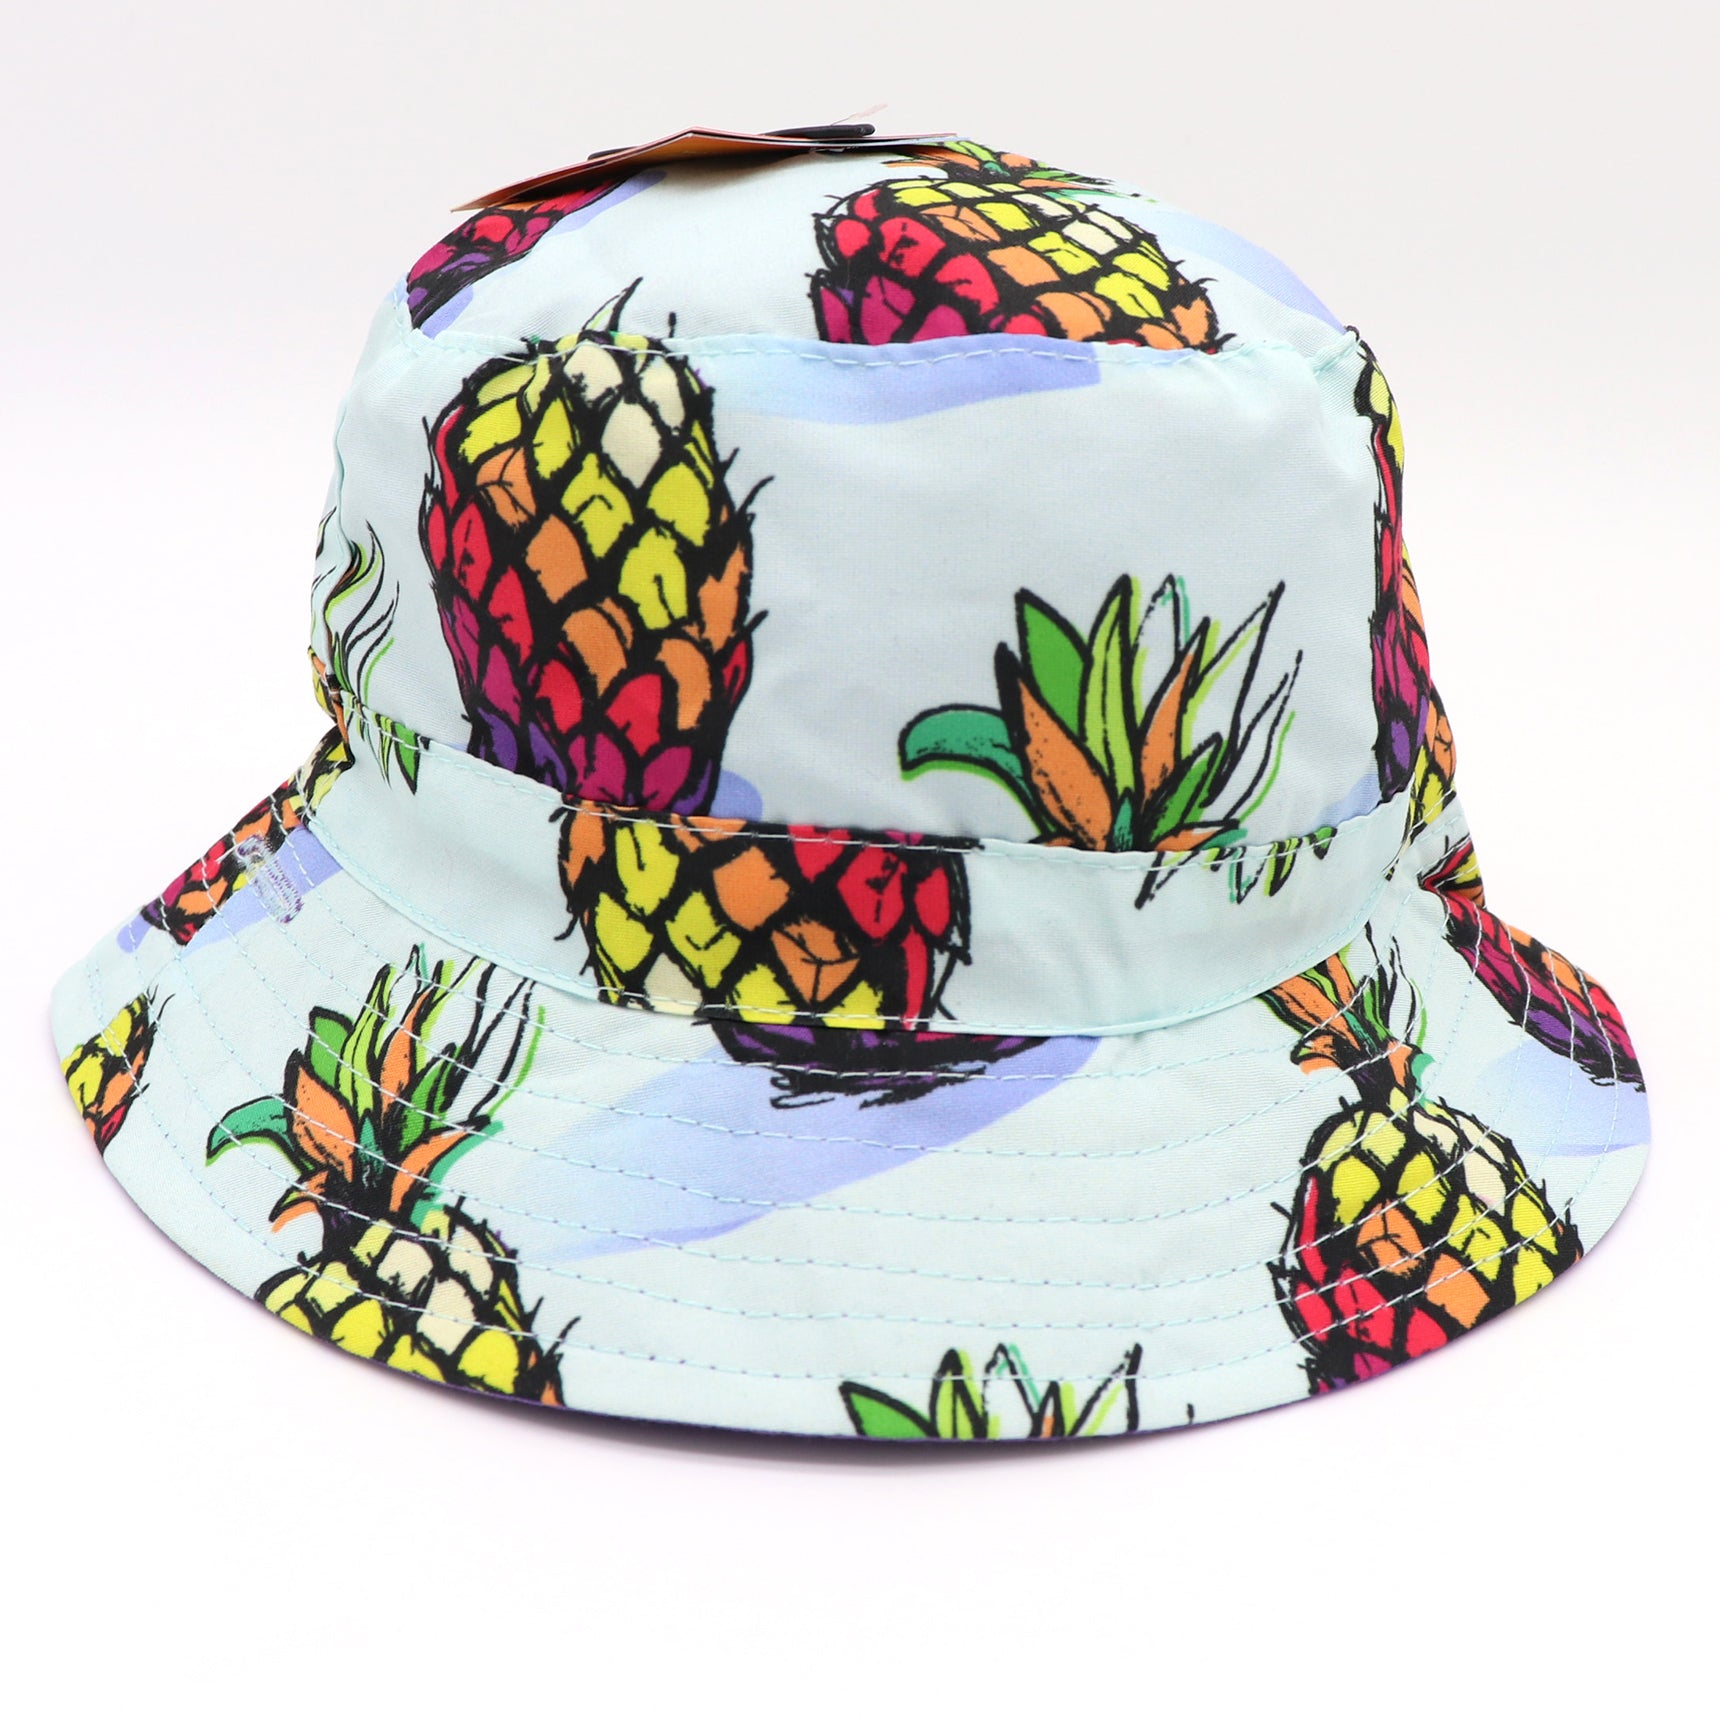 Kids bucket hat with UV protection, UPF 50+ for infants, toddlers, and small children. Sun protection. Lightweight hat for sunny days, beach, pool, zoo, and playdates. Soft blue with rainbow pineapples, and purple Velcro straps. Reverses to solid lilac hat. Sold by SDTrading Co.